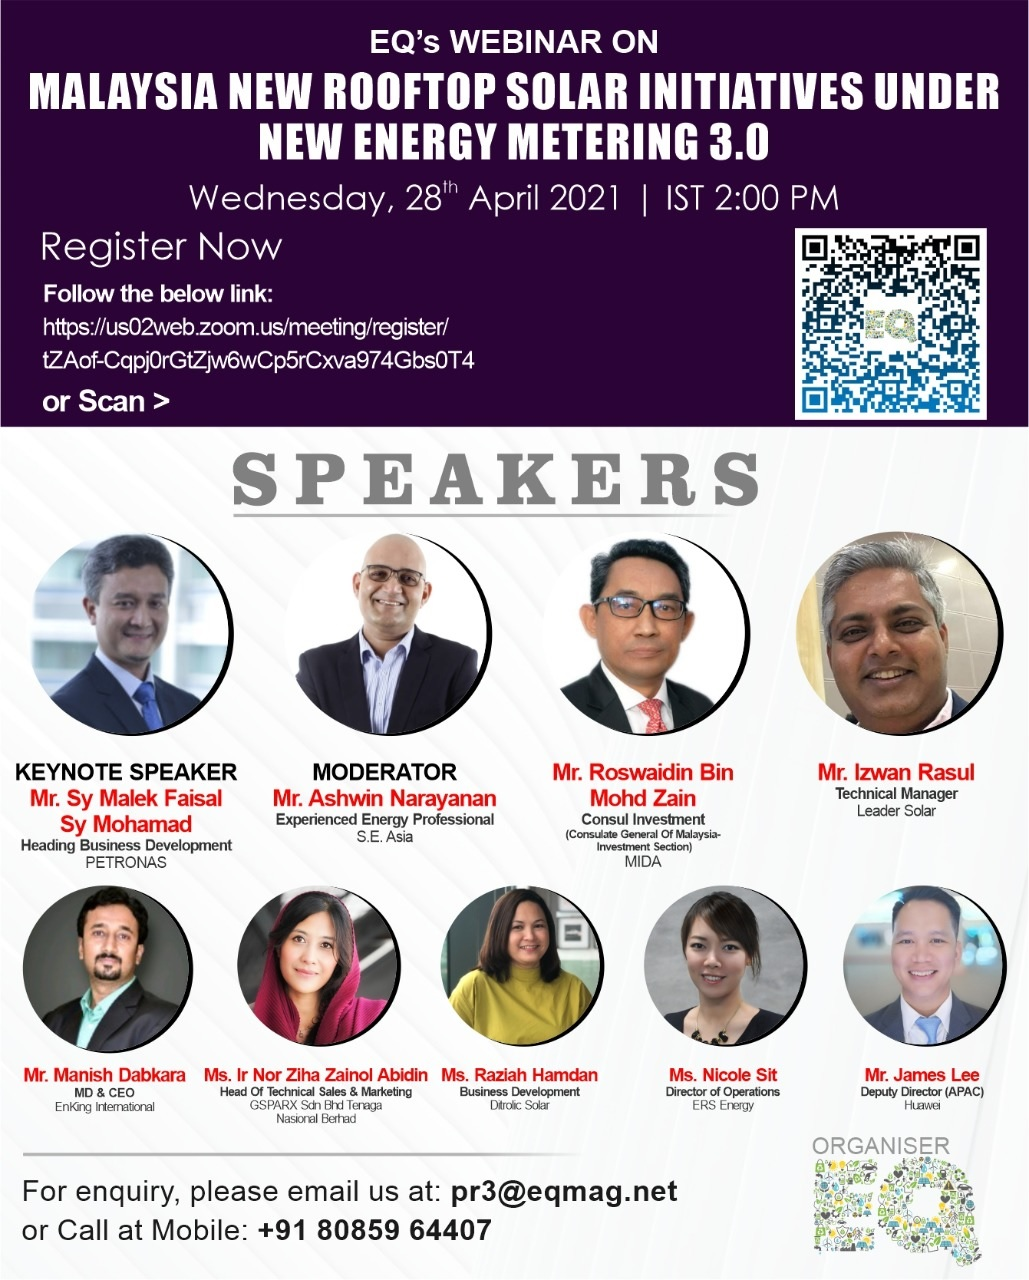 EQ Webinar on Malaysia New RoofTop Solar Initiatives under New Energy Metering 3.0 on Wednesday April 28th from 02:00 PM Onwards….Register Now !!!